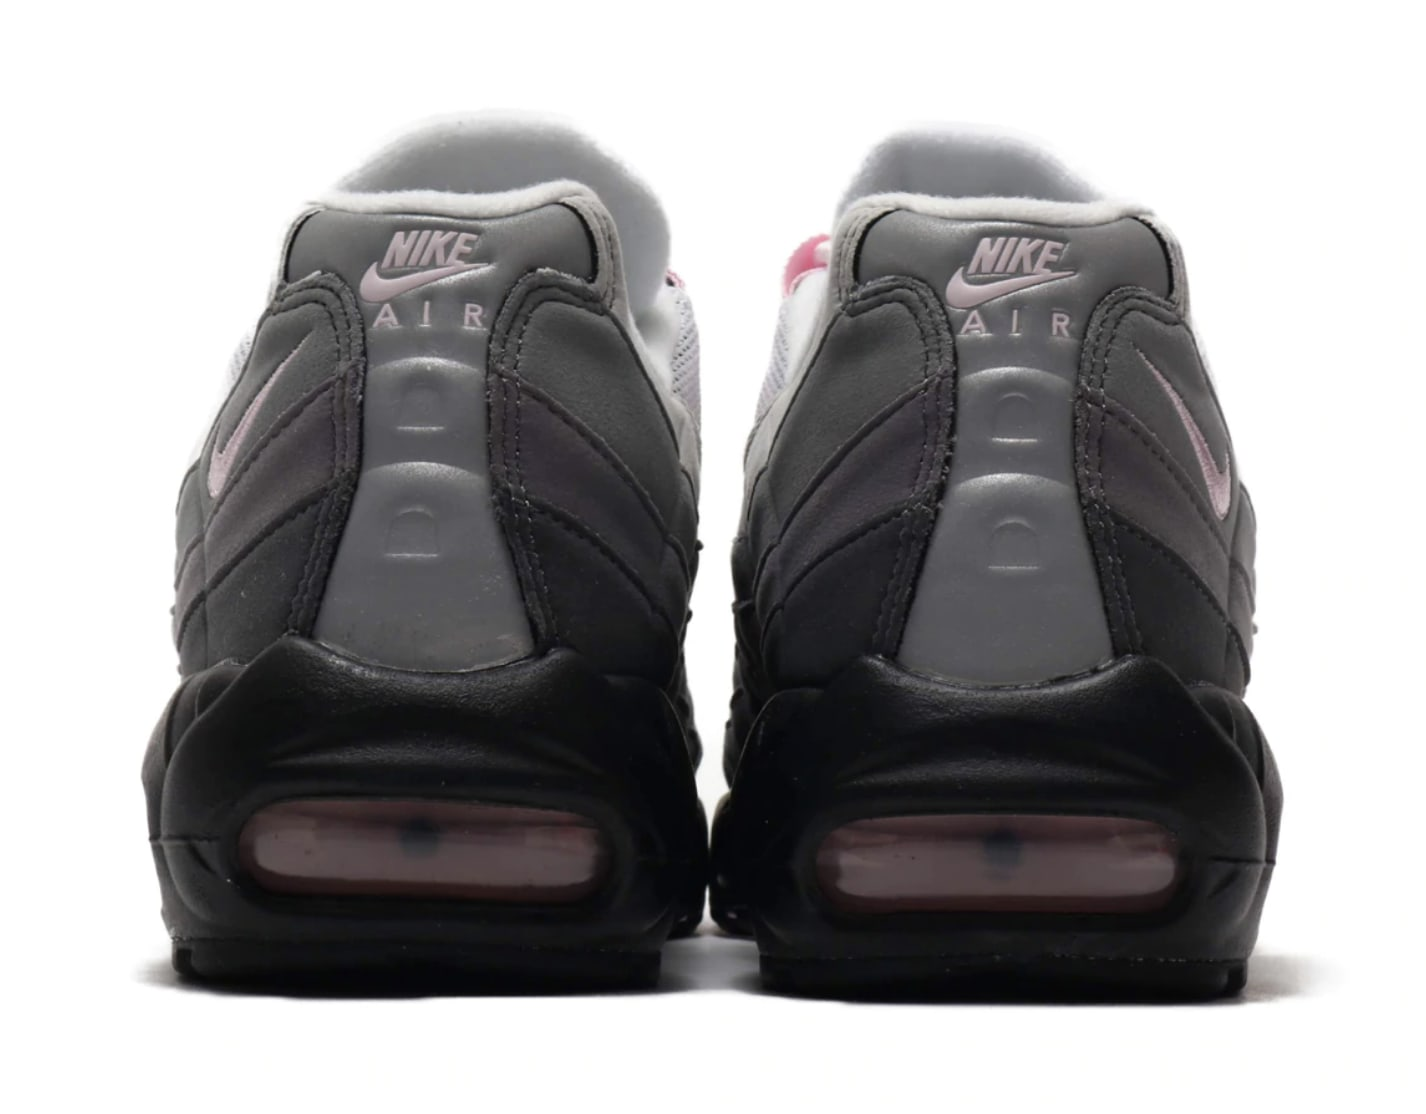 nike-air-max-95-prm-pink-foam-cj0588-001-heel